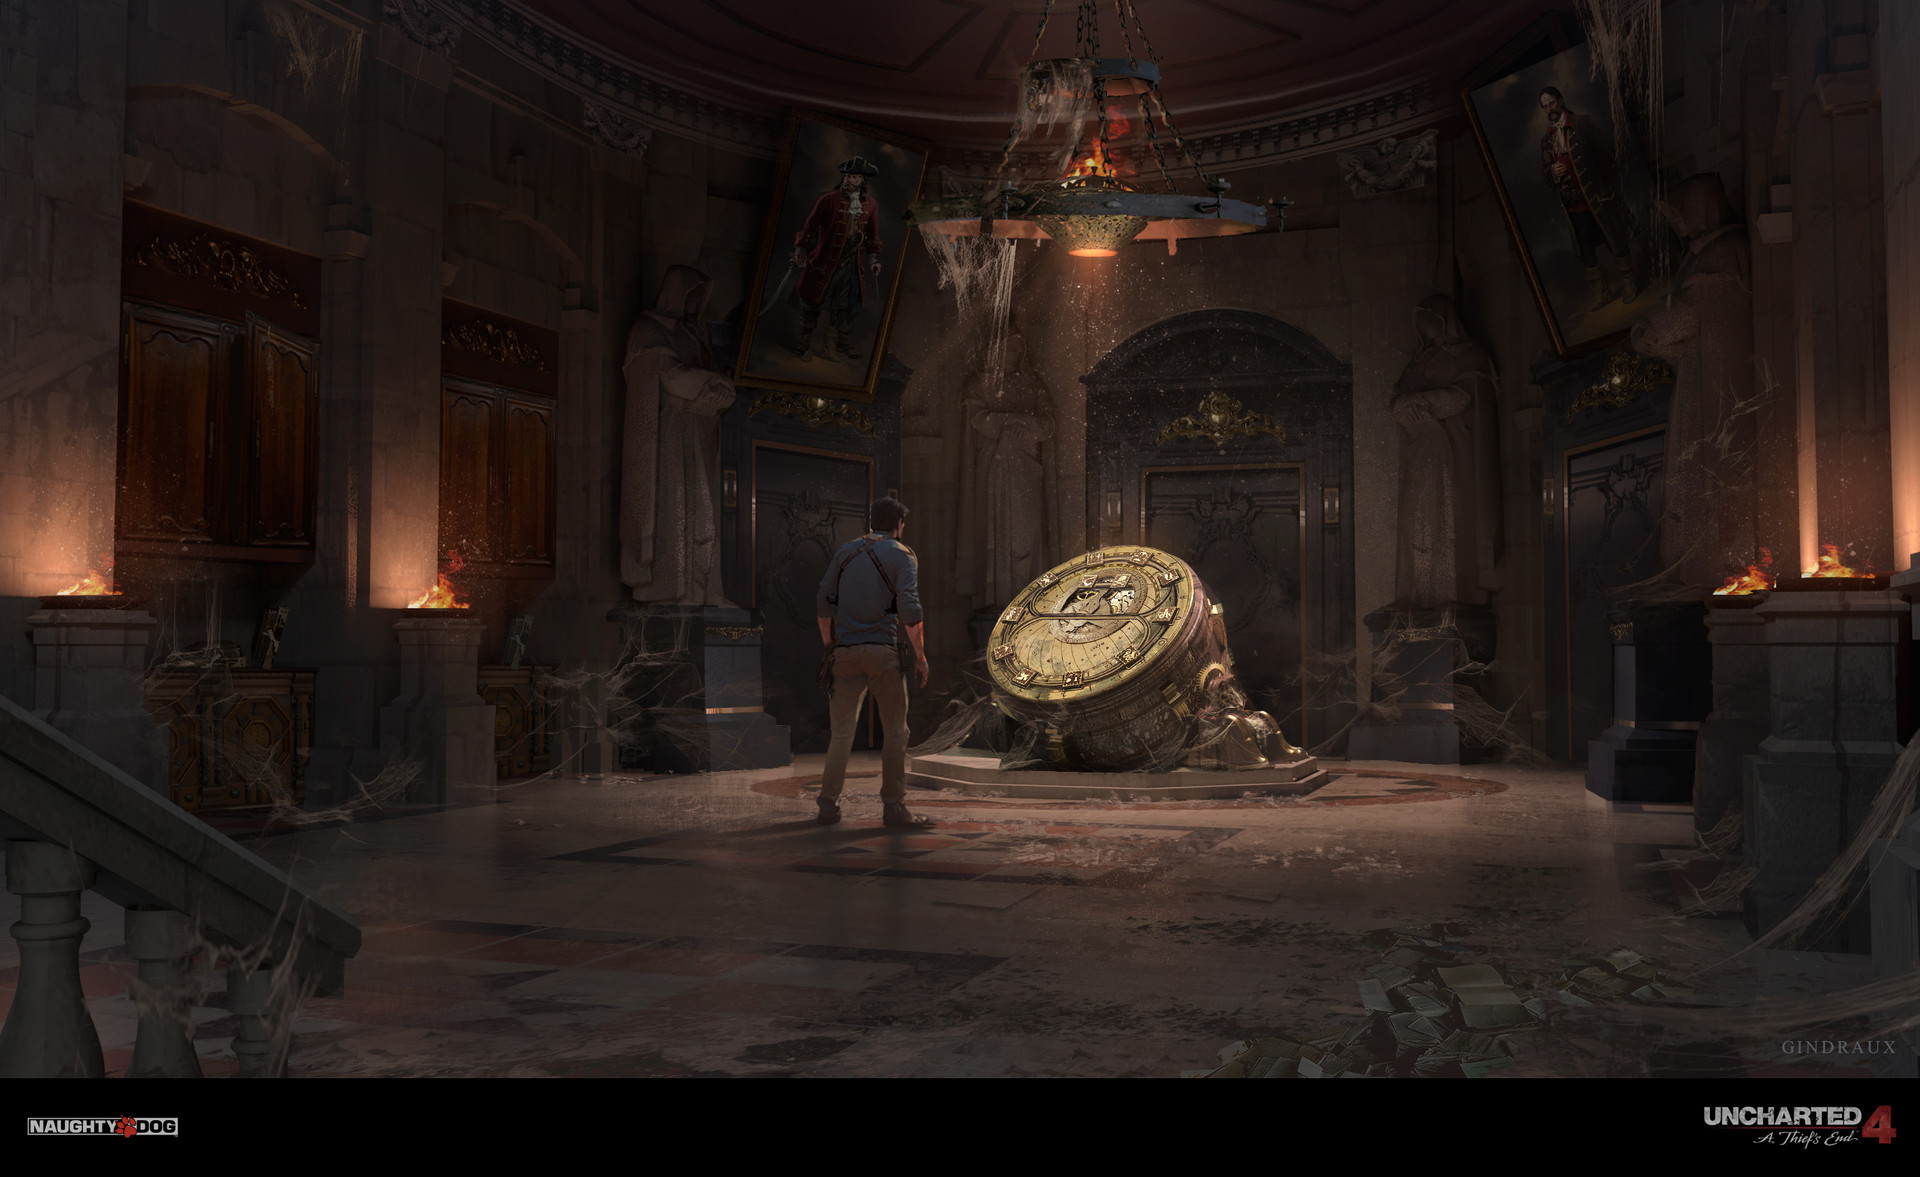 Nick Gindraux Digital Painting Concept art Uncharted 4 Tower Basement